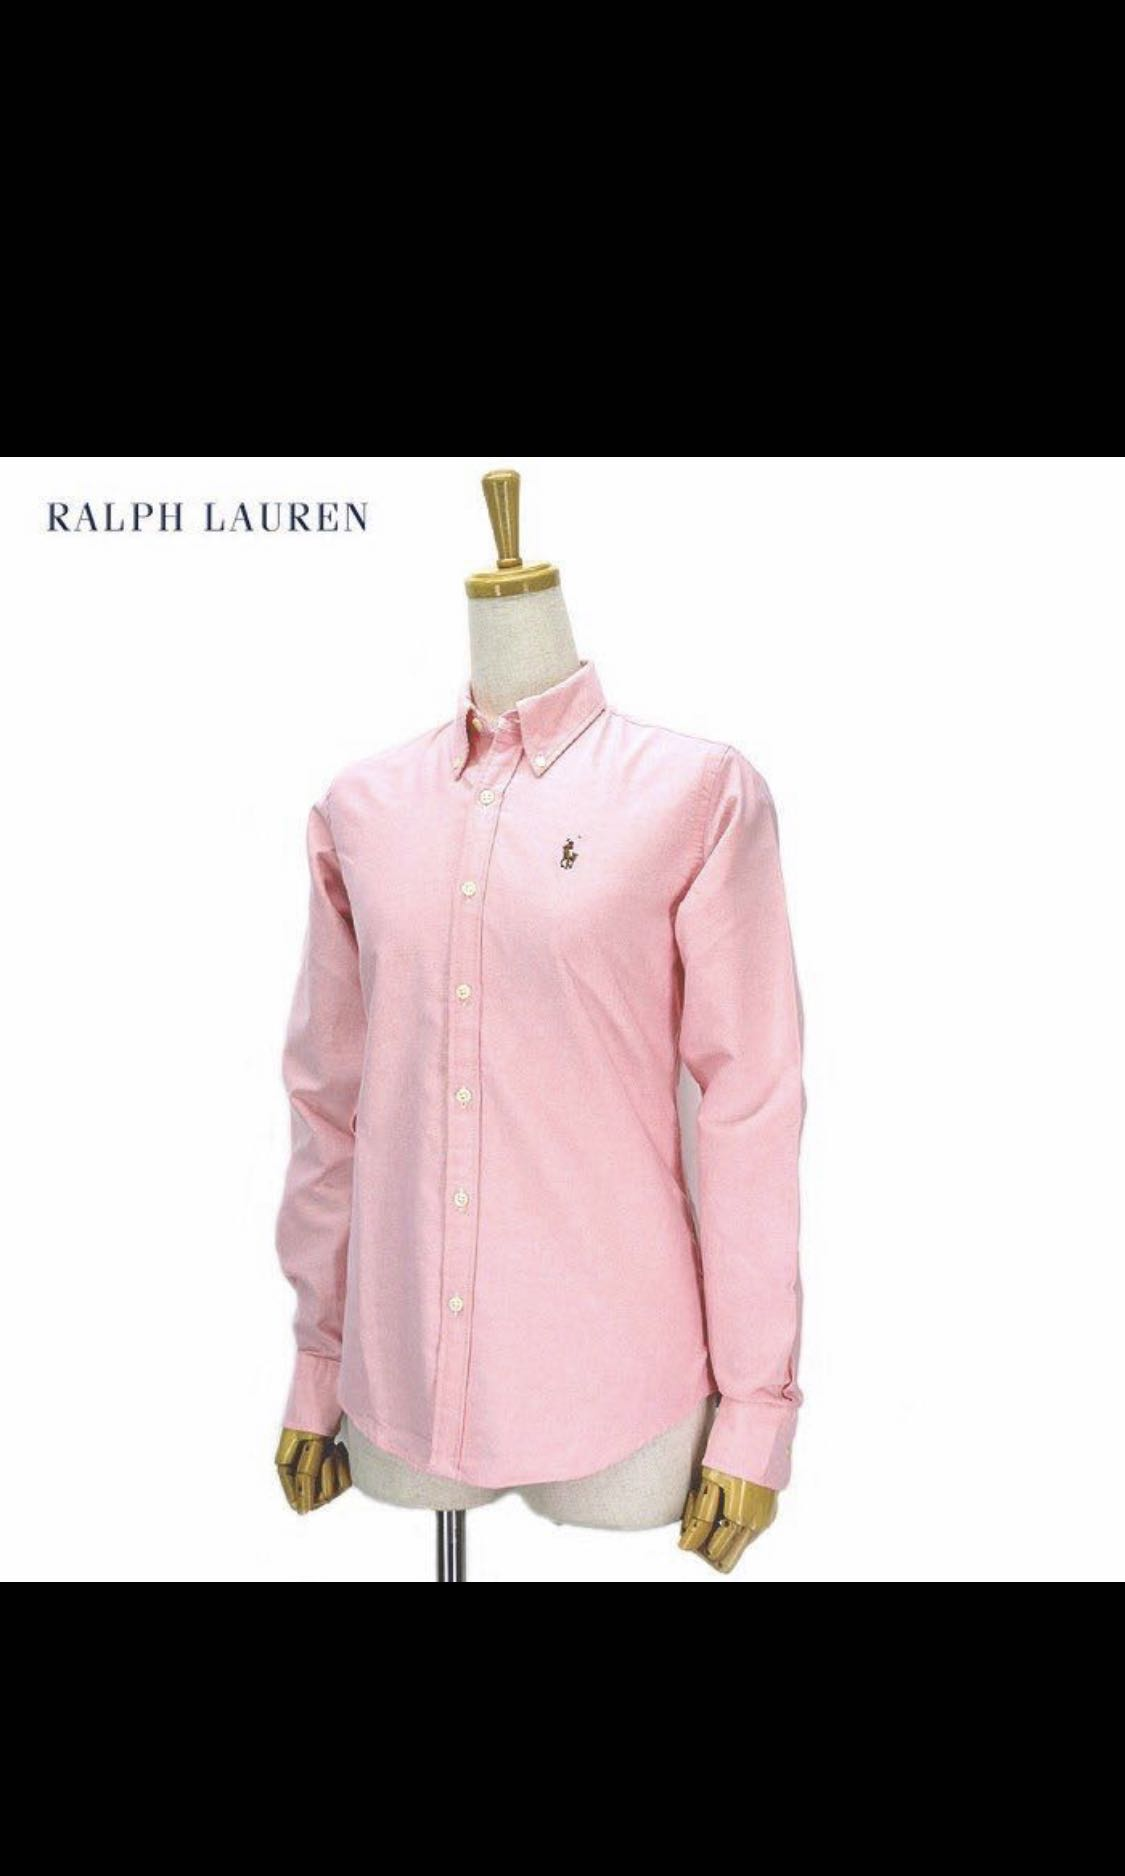 e4b09c077c9 Polo Ralph Lauren Oxford Classic Fit Button Down Shirt